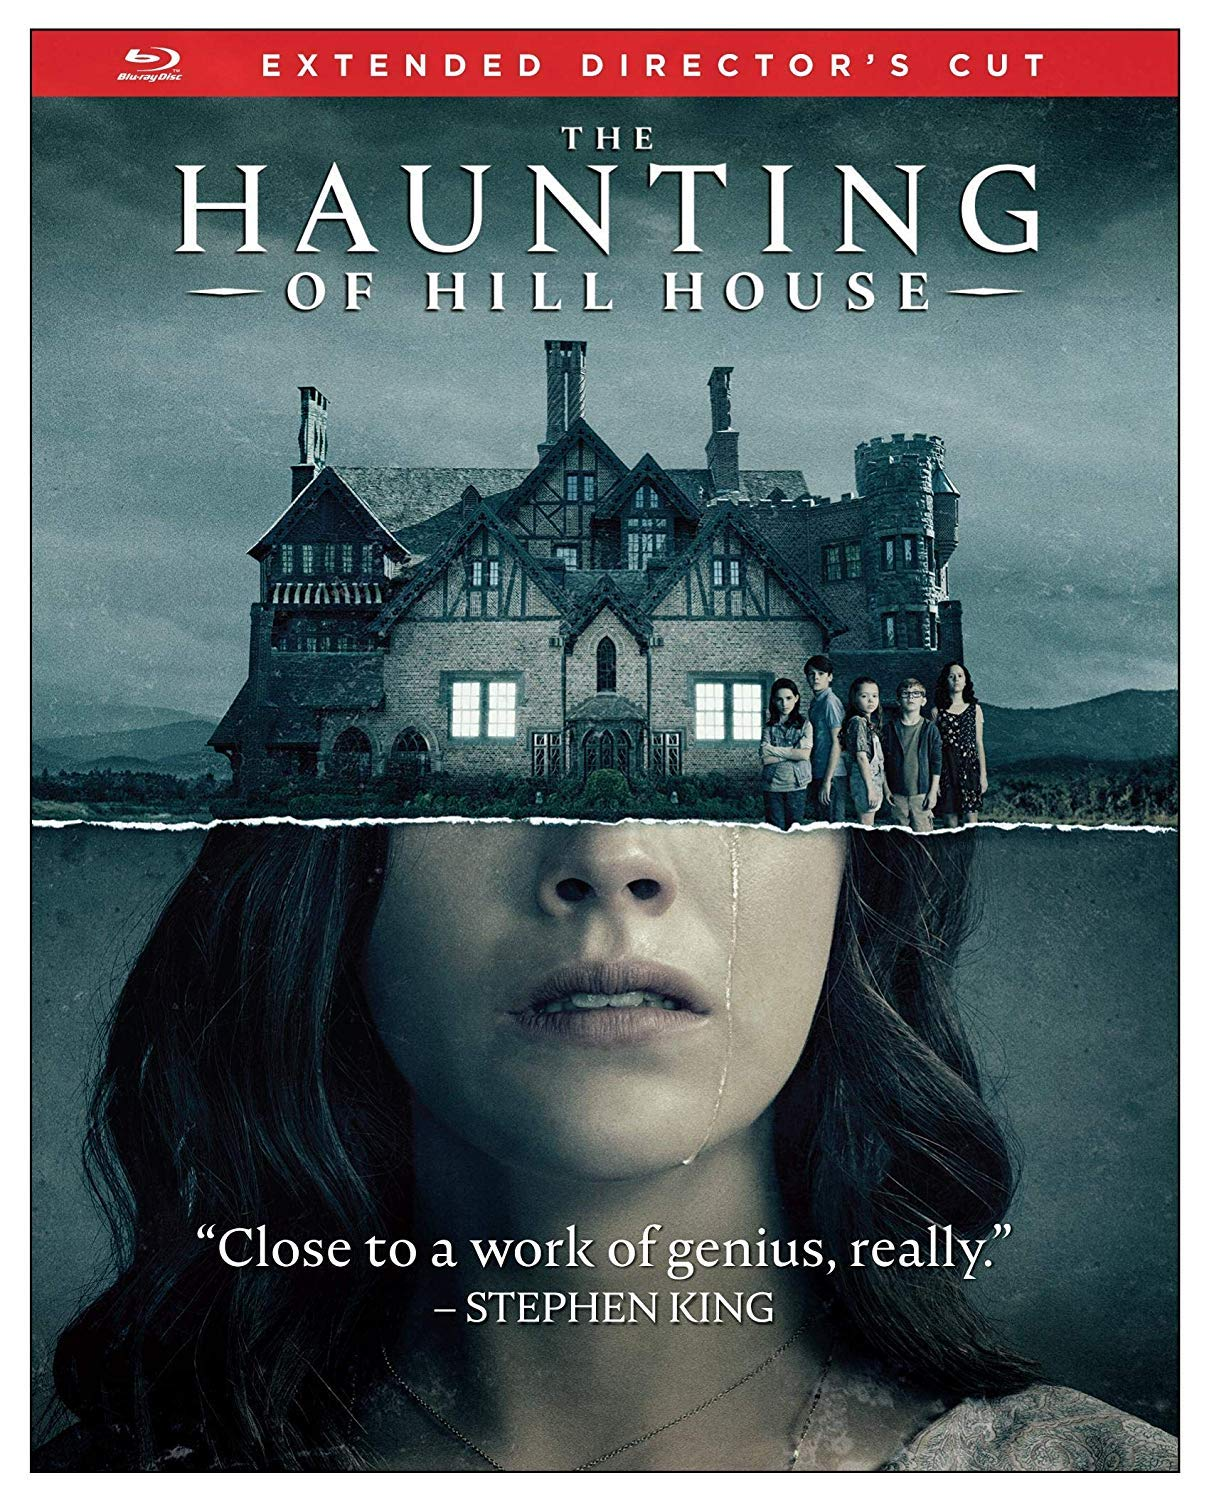 Amazon Com The Haunting Of Hill House Blu Ray Carla Gugino Elizabeth Reaser Timothy Hutton Mike Flanagan Movies Tv